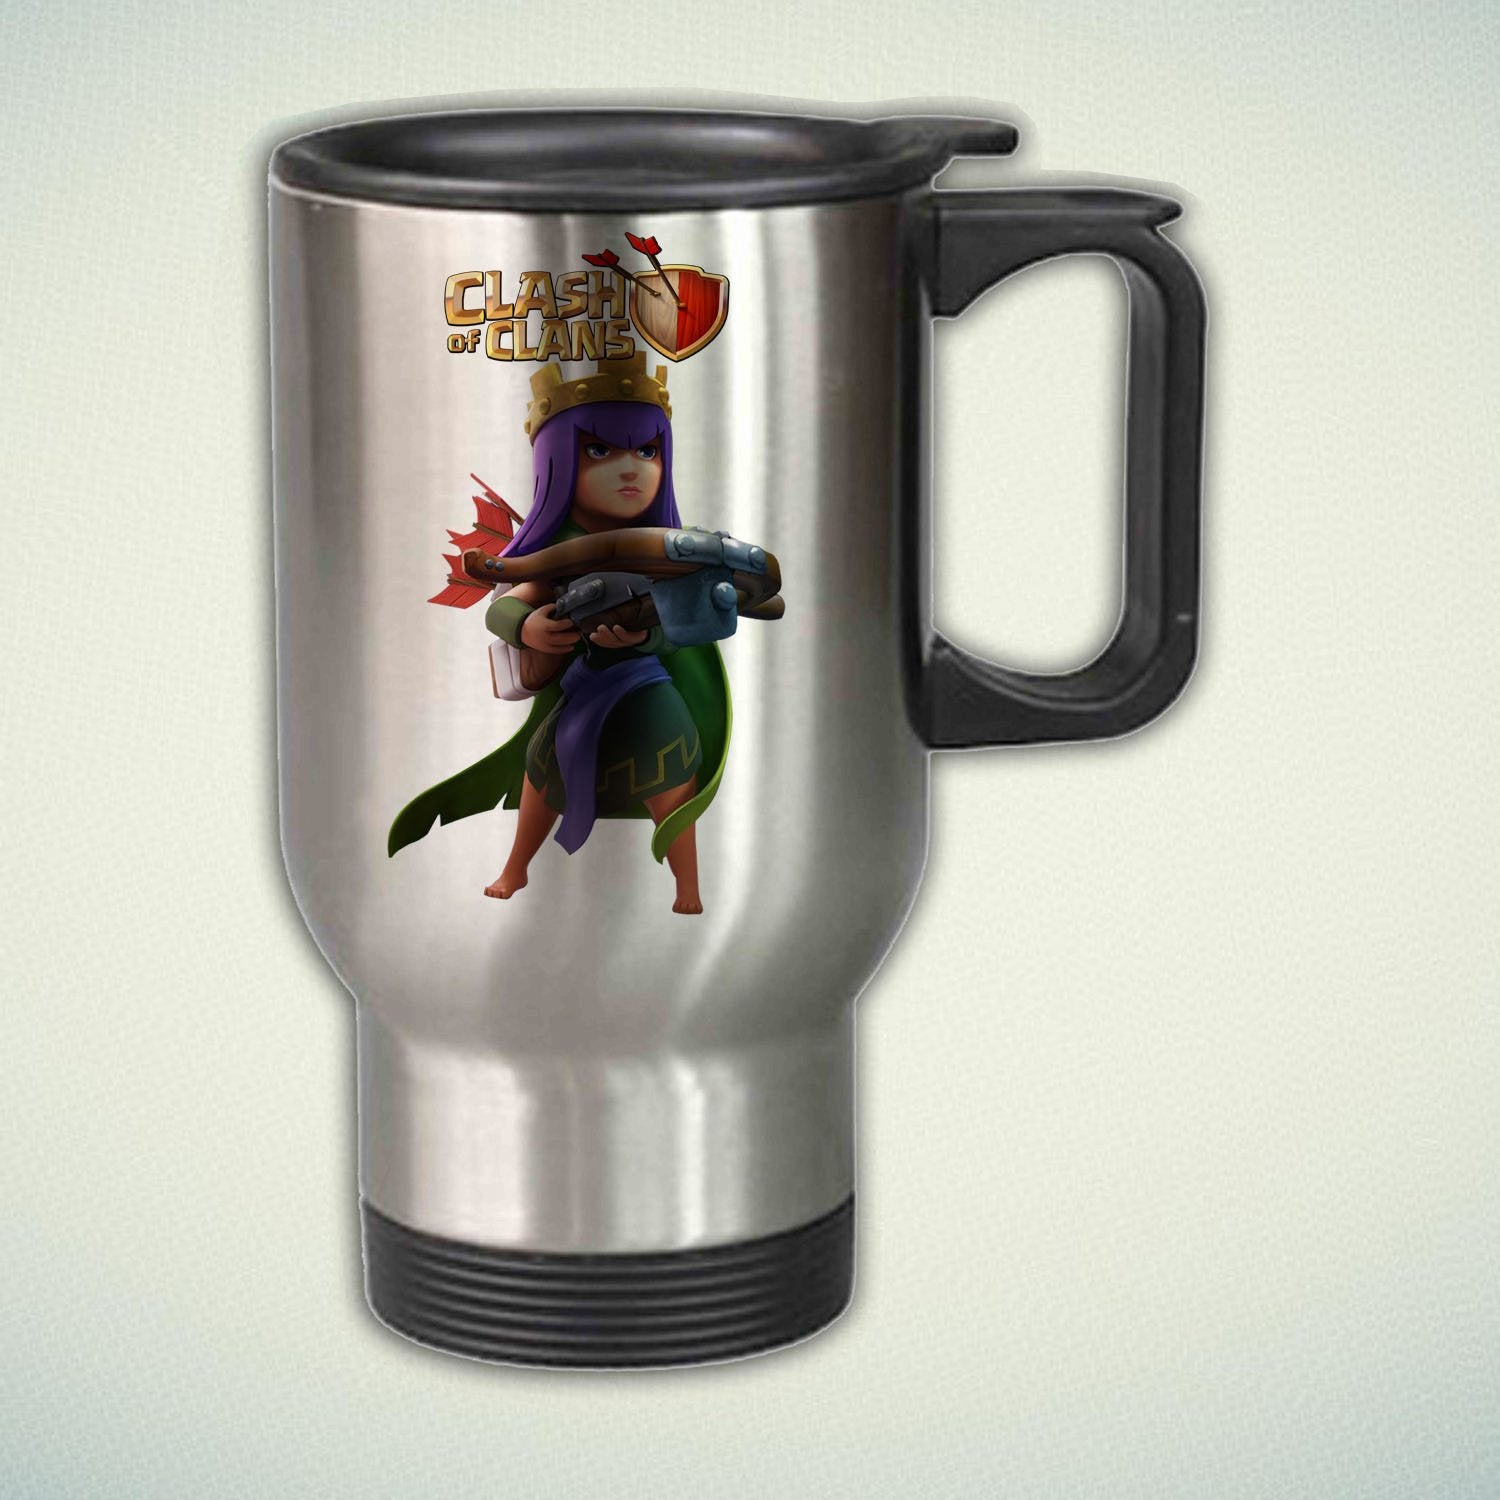 Clash of Clans Archer Queen 14oz Stainless Steel Travel Mug